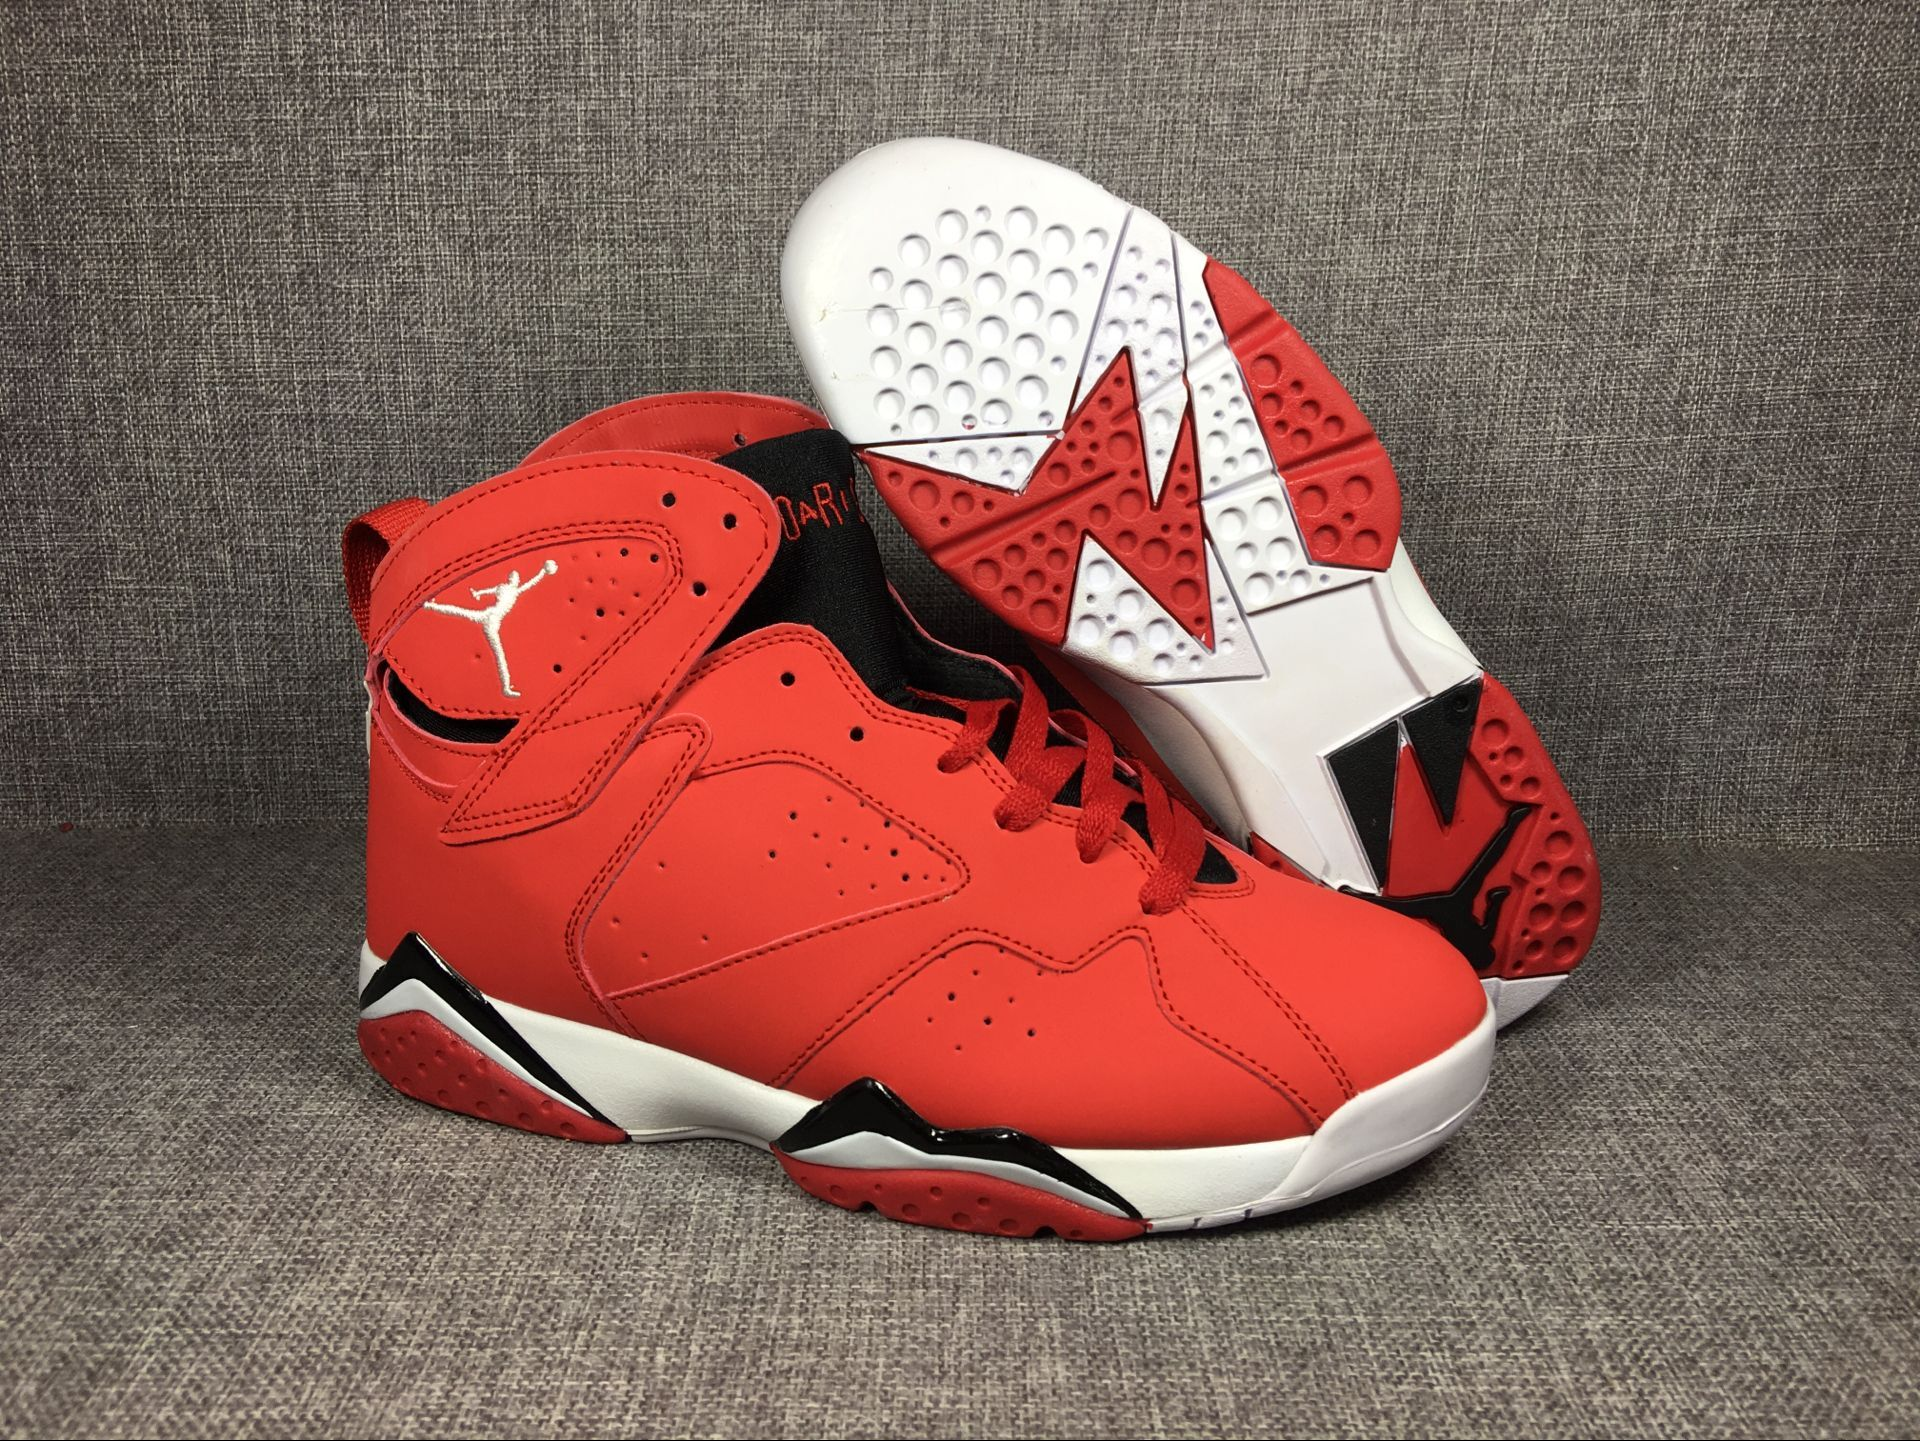 New Air Jordan 7 Retro Red Black White Shoes